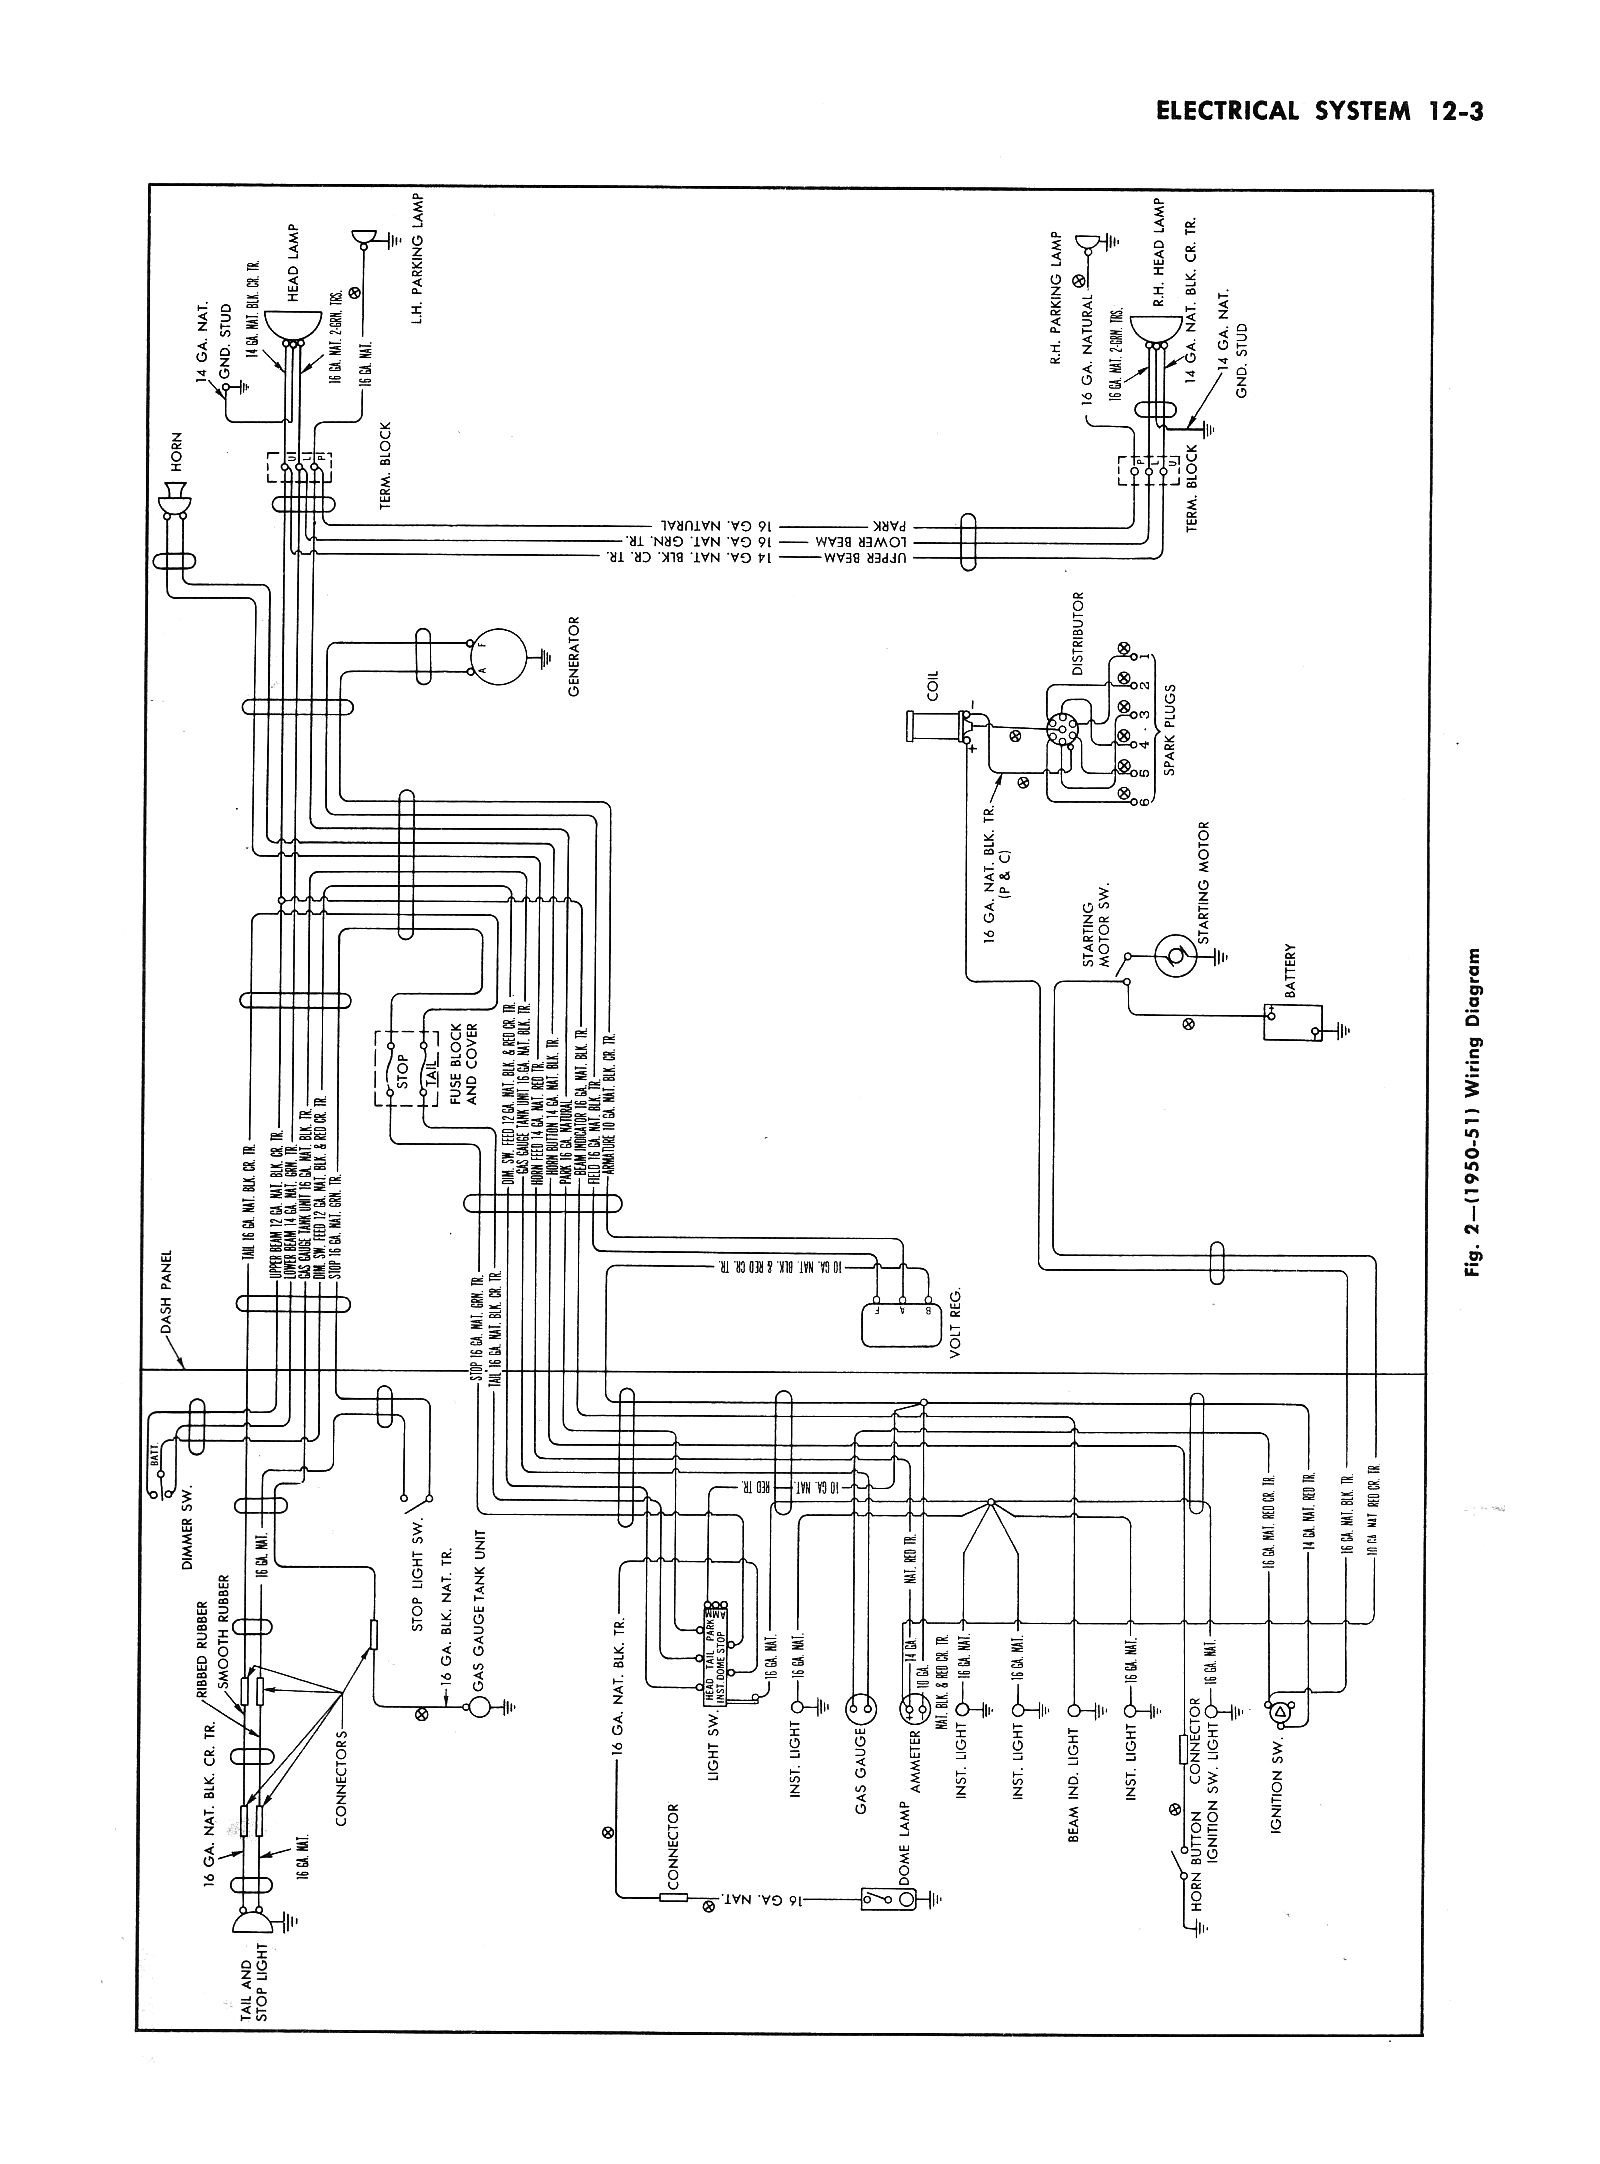 50ctsm1203 chevy wiring harness diagram 57 chevy wiring harness diagram 1955 Chevy Headlight Wiring Diagram at reclaimingppi.co